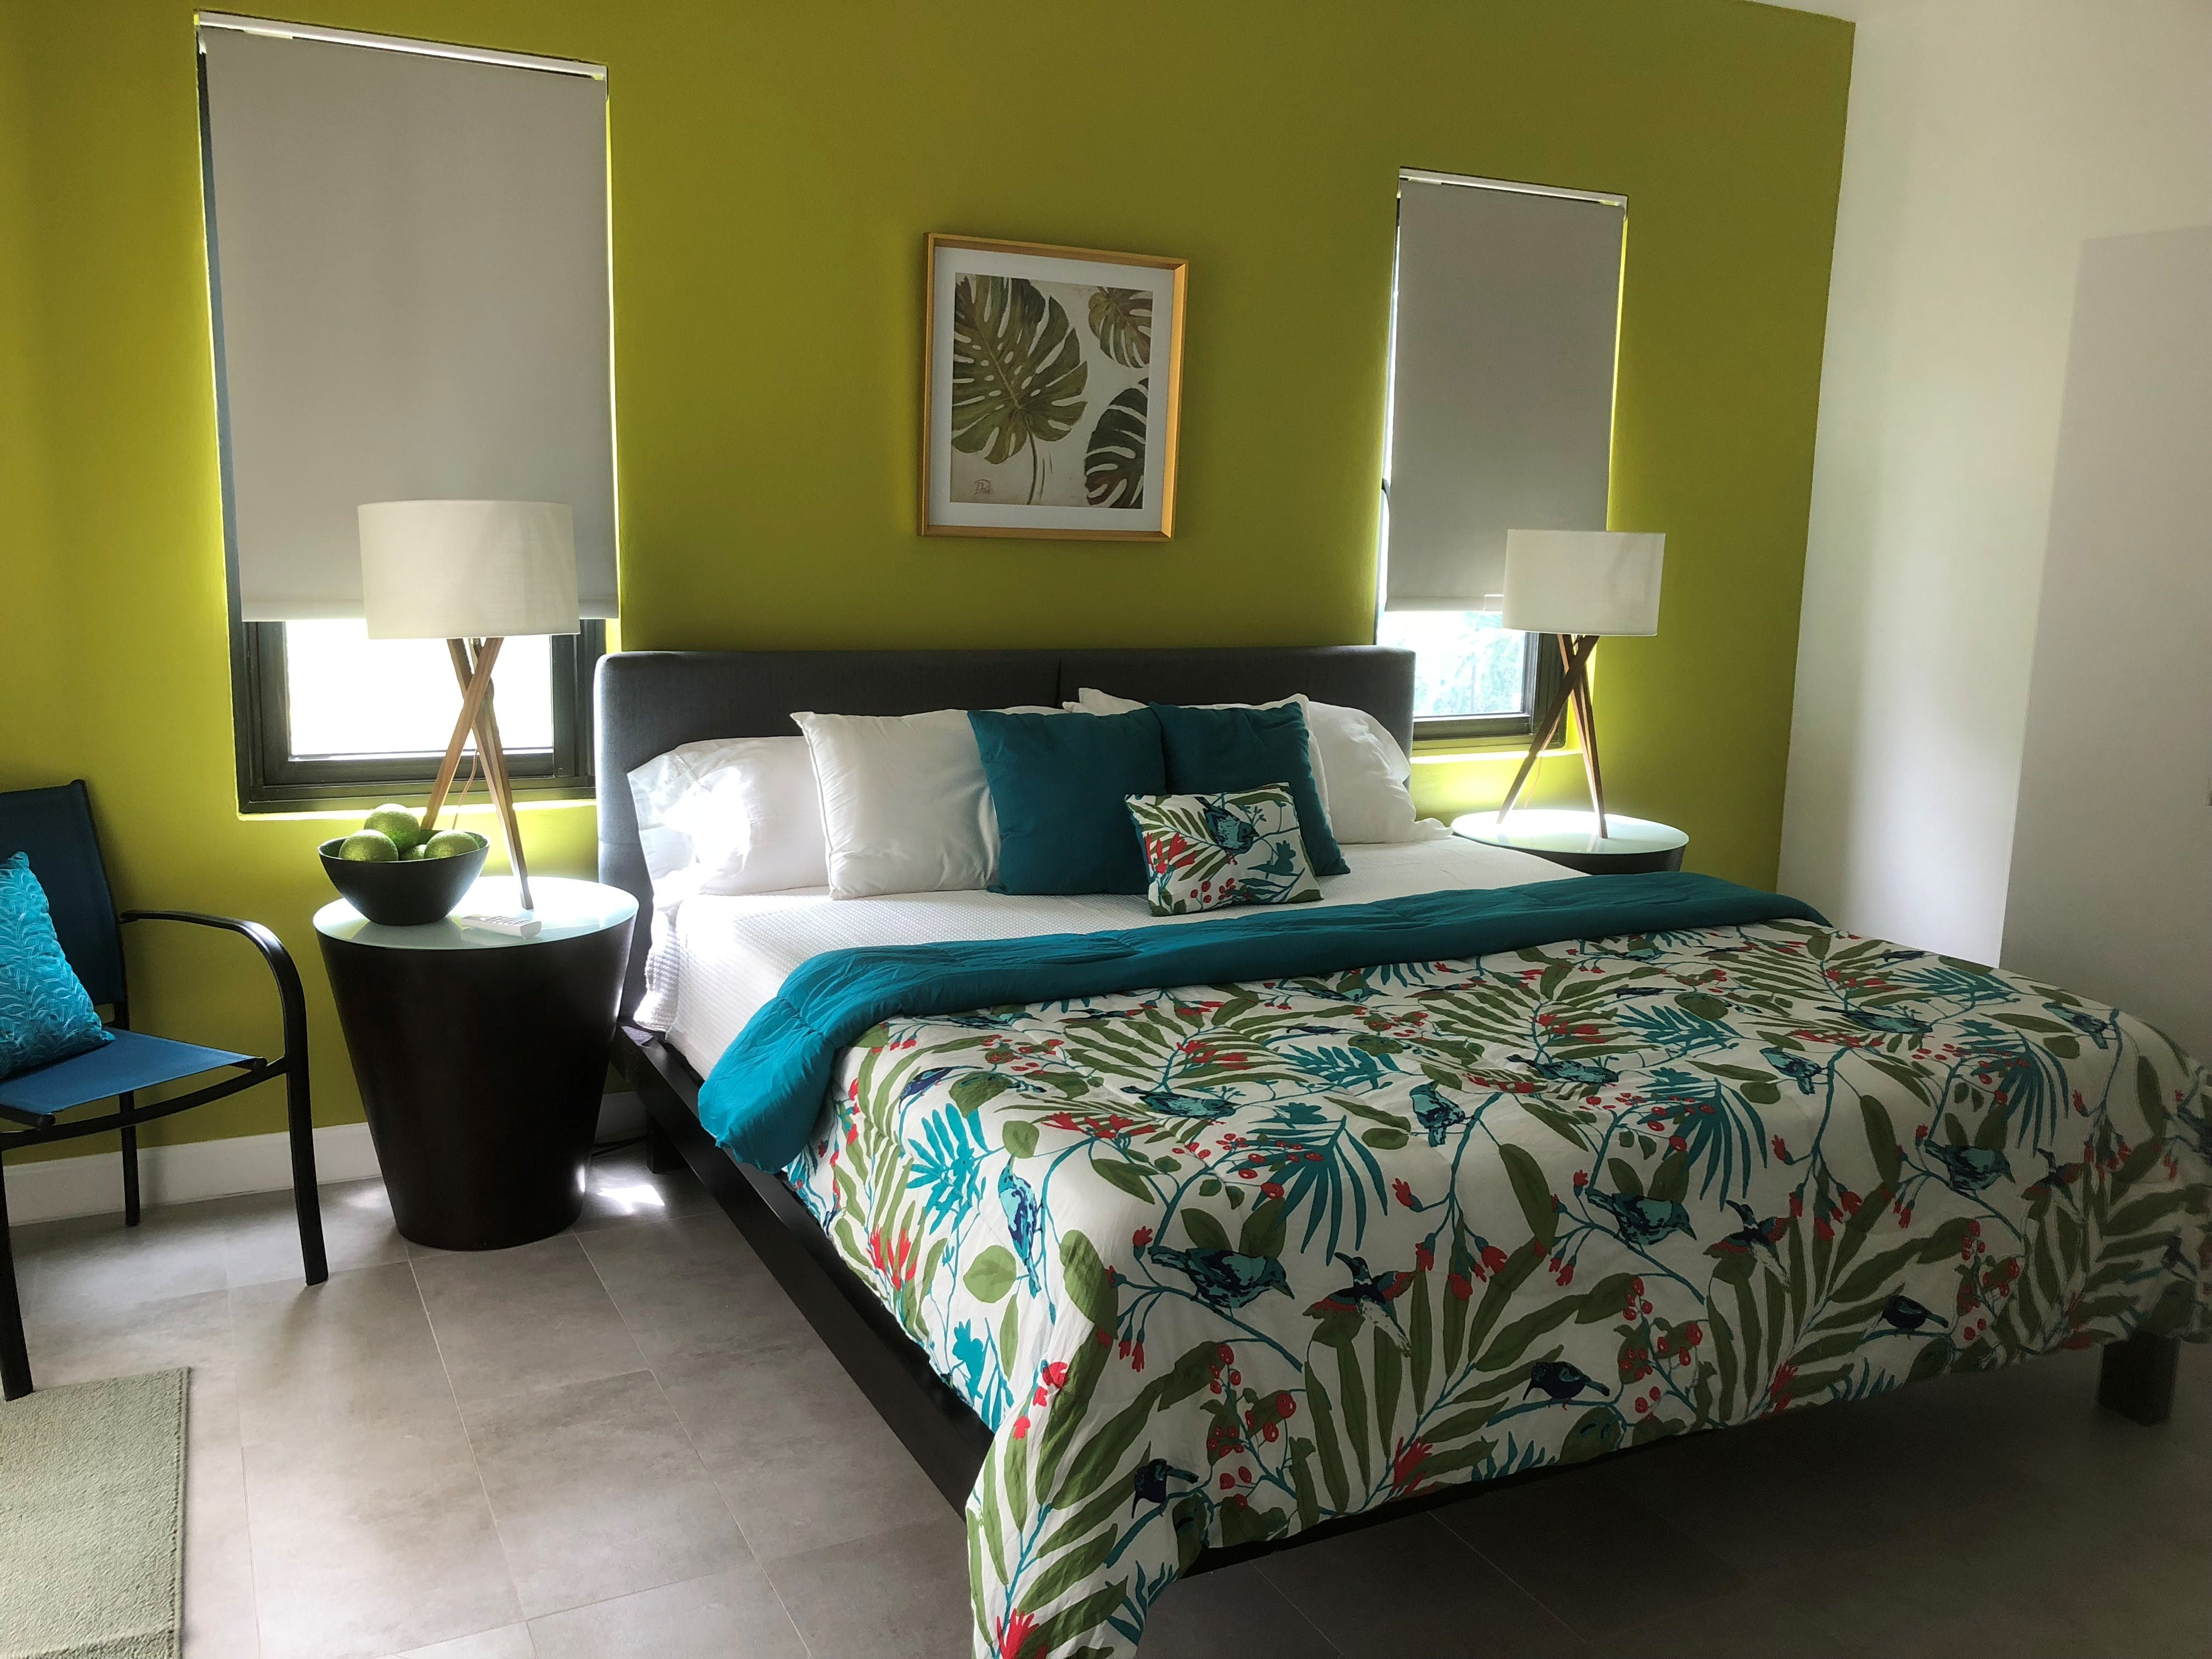 Emerald Garden King Suite, with walk in closet, private bathroom, private indoor/outdoor shower, walk out access to pool.